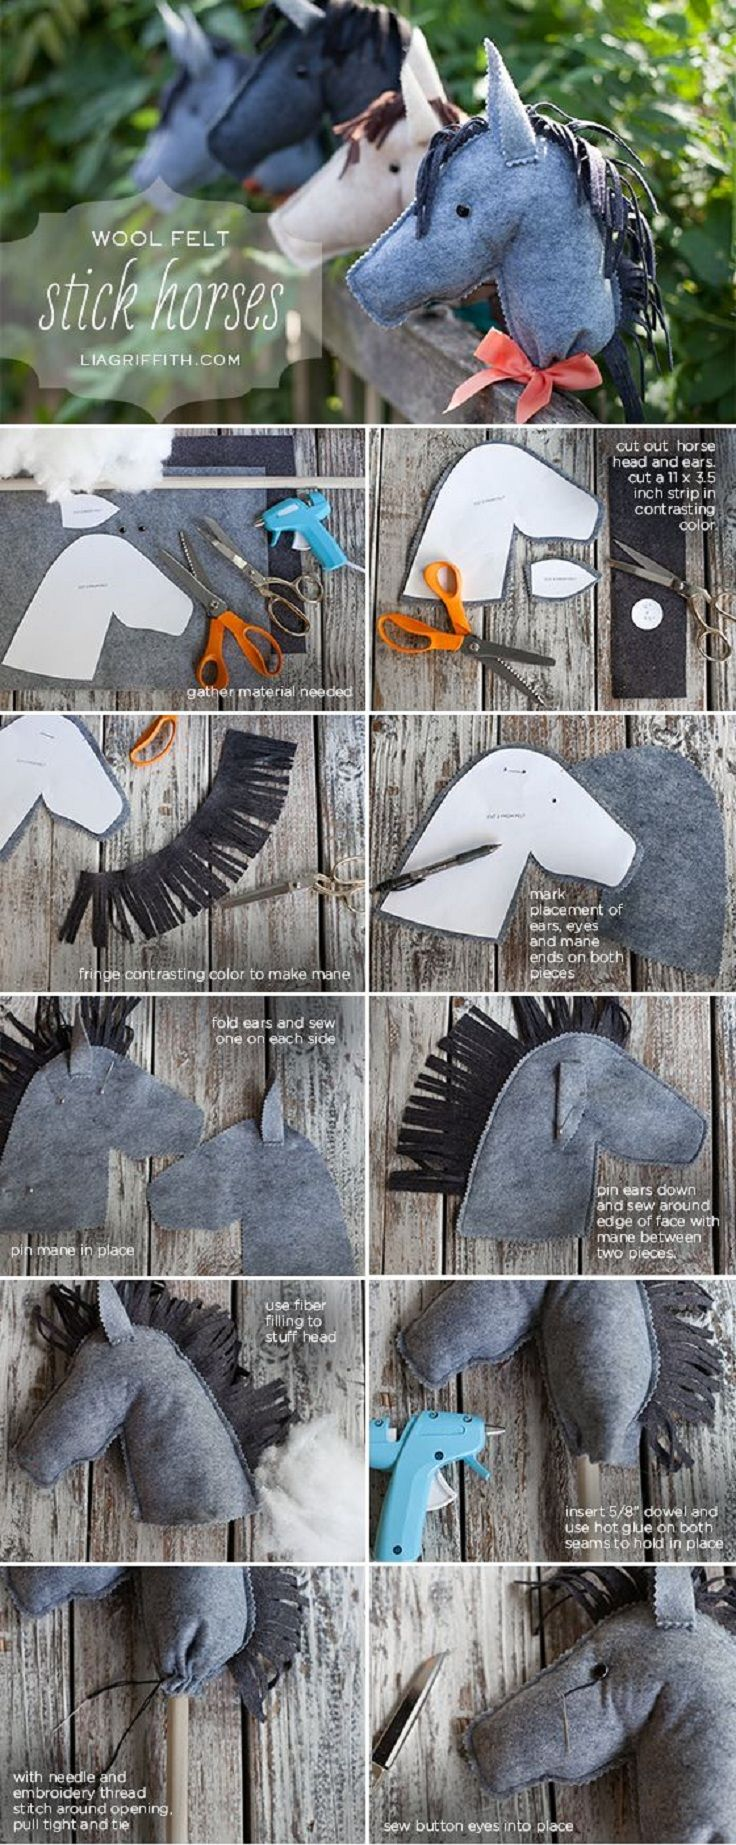 DIY: Felt Stick Horses - It would be so cool to make other animals too! Elephants, lions, dragons, whatever, all you'd need is the animals profile.